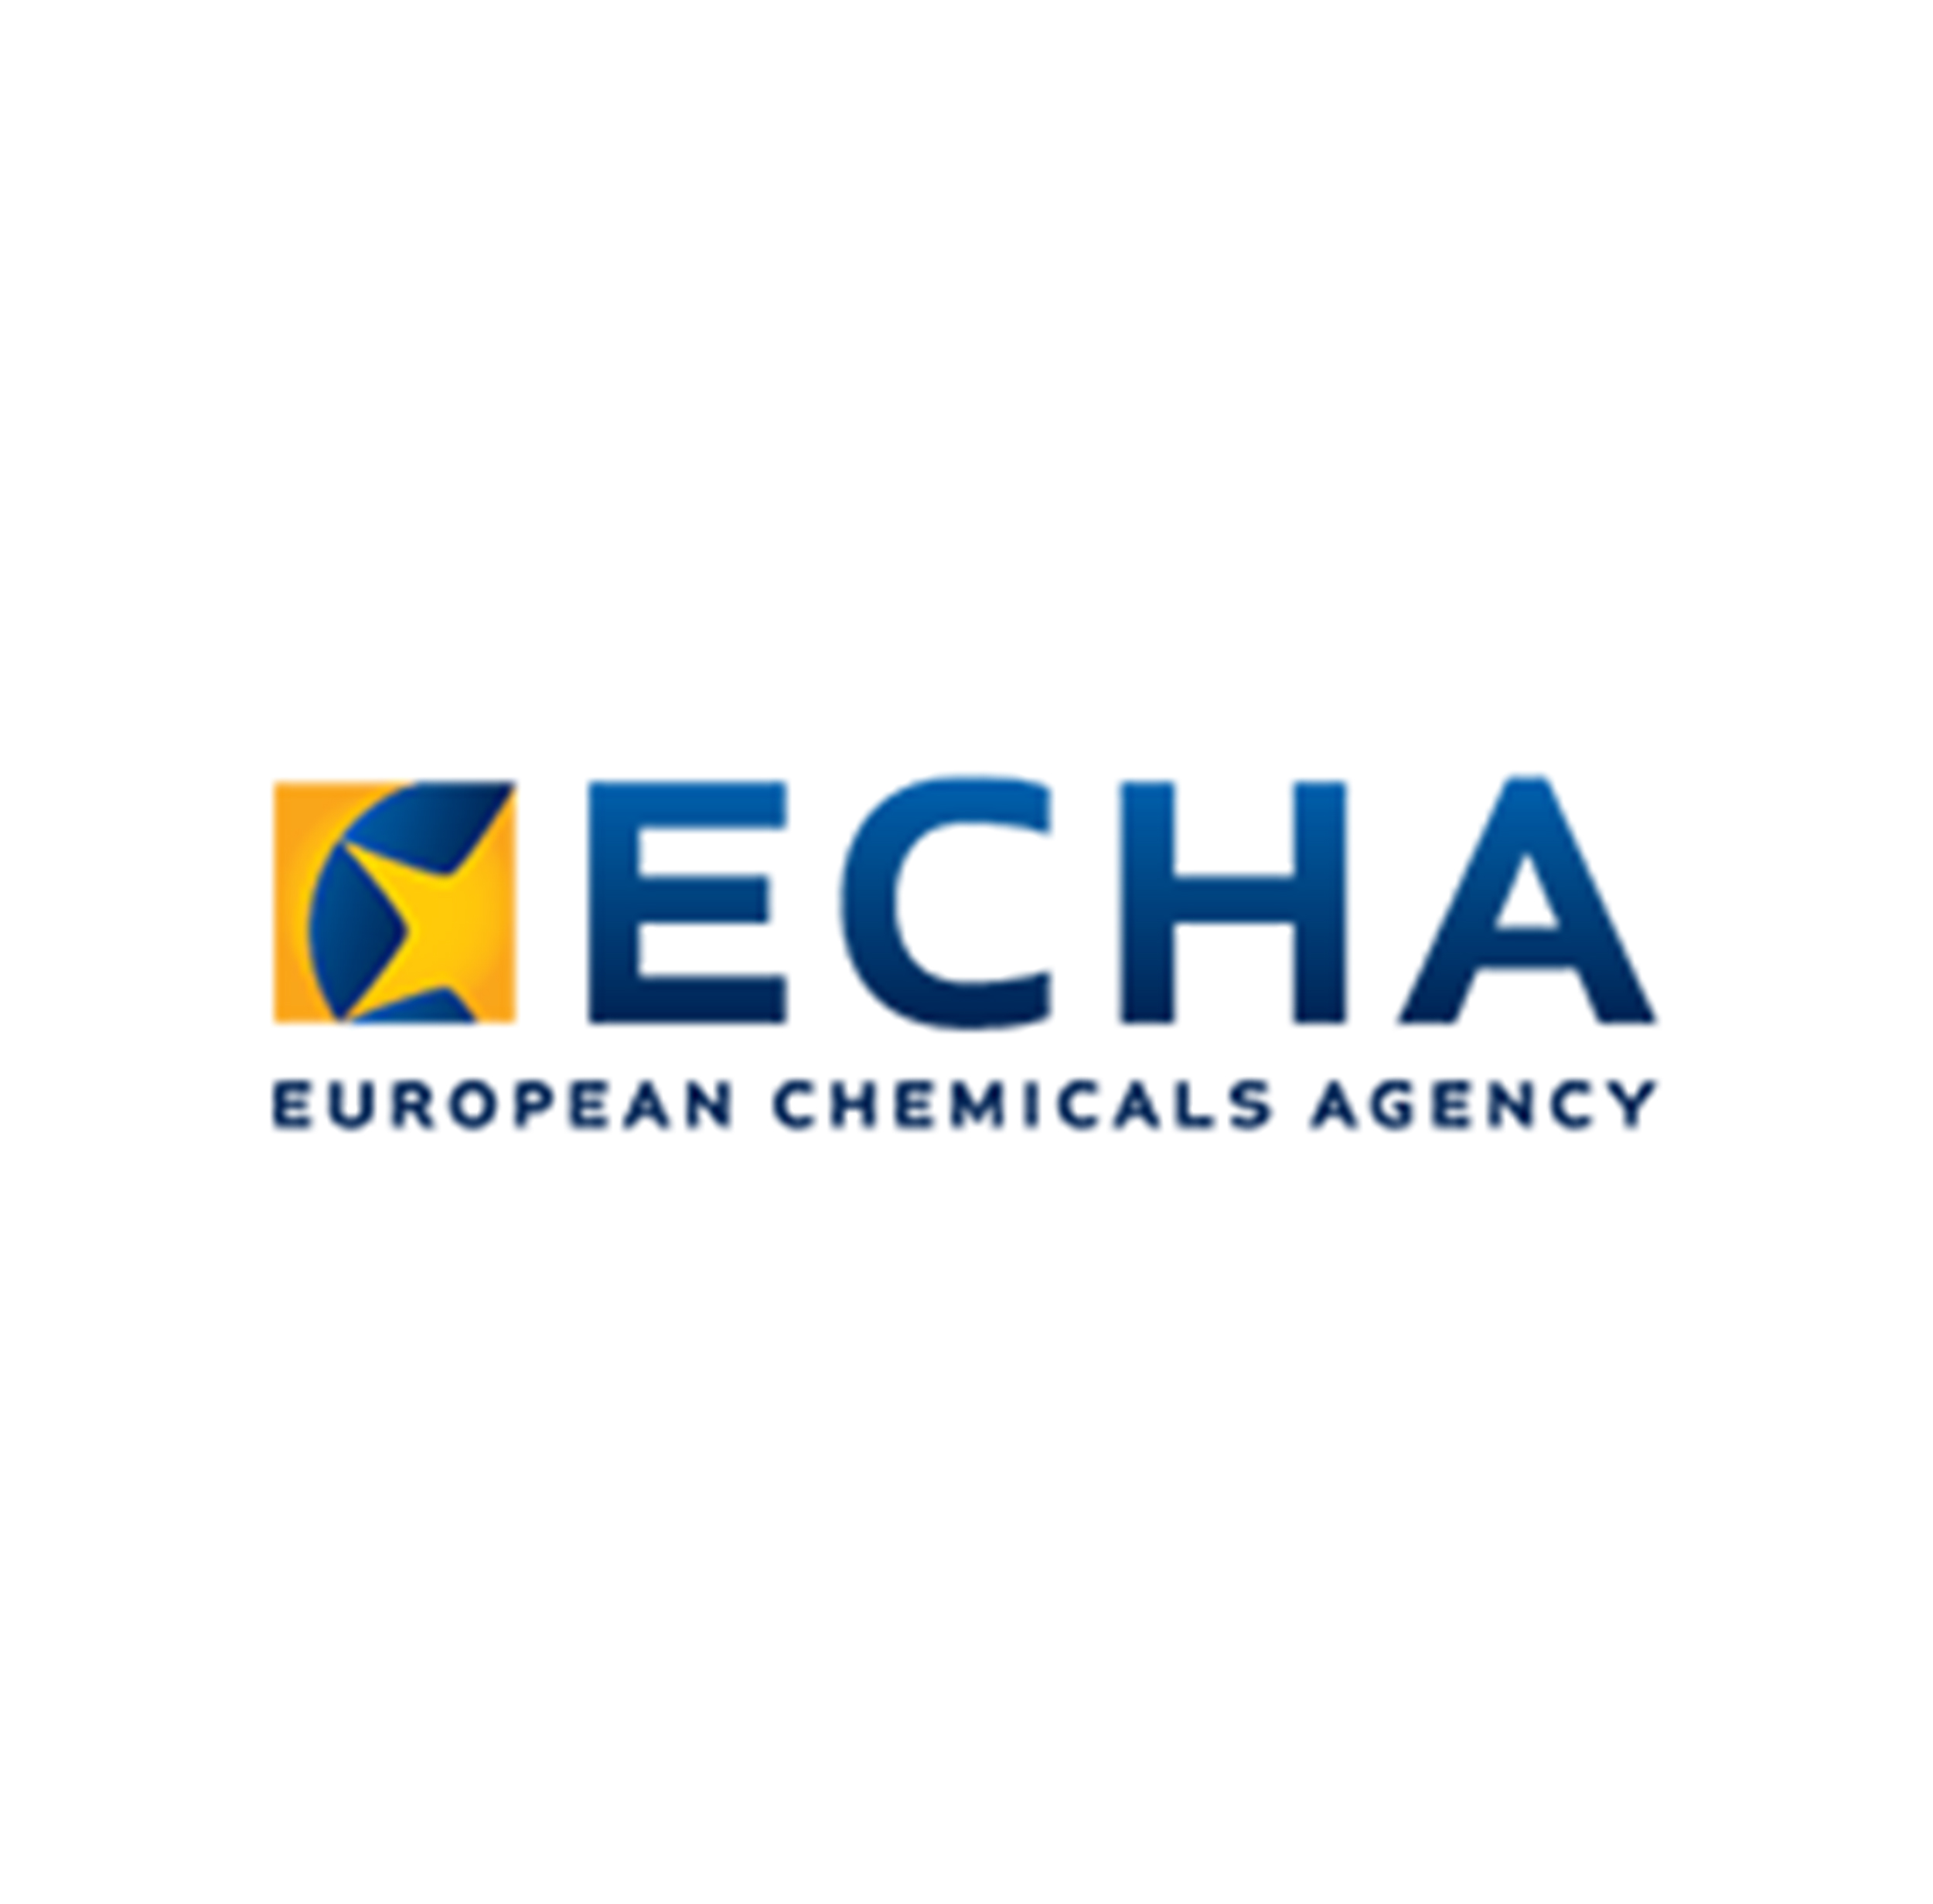 ECHA first logo.png